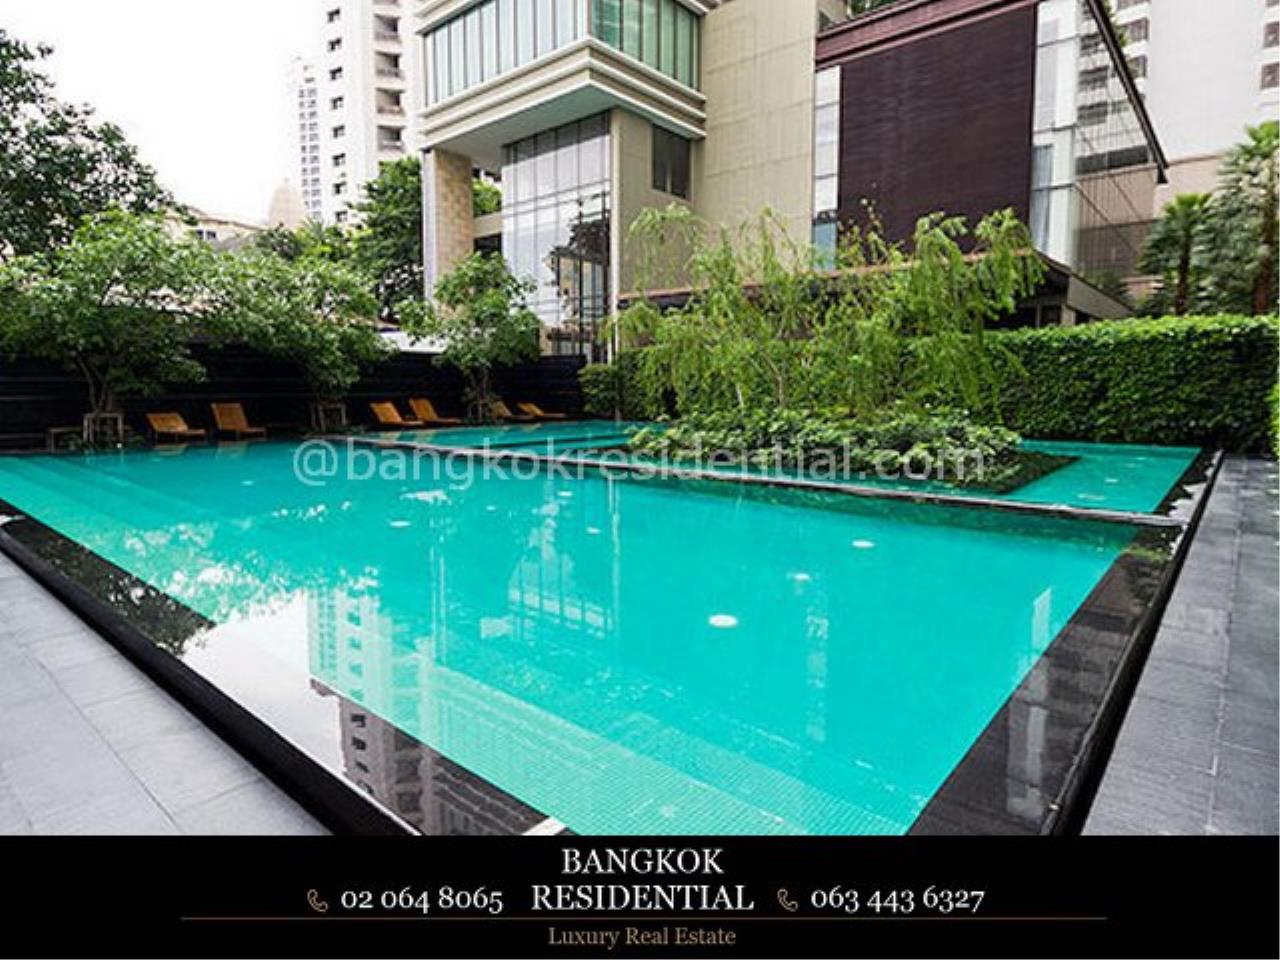 Bangkok Residential Agency's 1BR Duplex Emporio Place For Rent (BR5574CD) 5